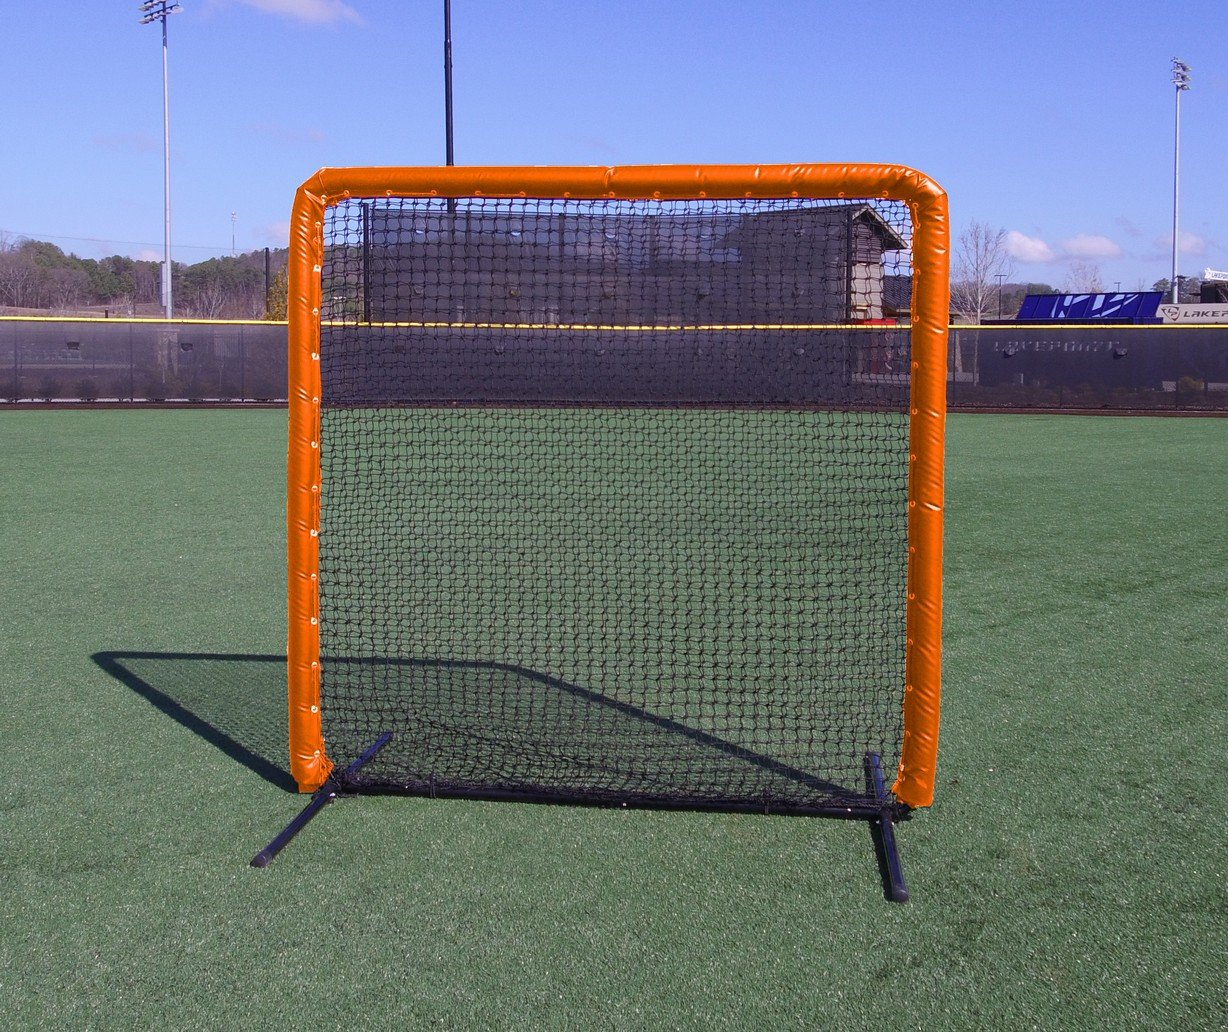 Armor Series 7X7 Protective Screen with Screen Bulletz. Baseball/Softball Padded Practice Screen Net with Vinyl Padding. Choose Color! (Orange) by Armor